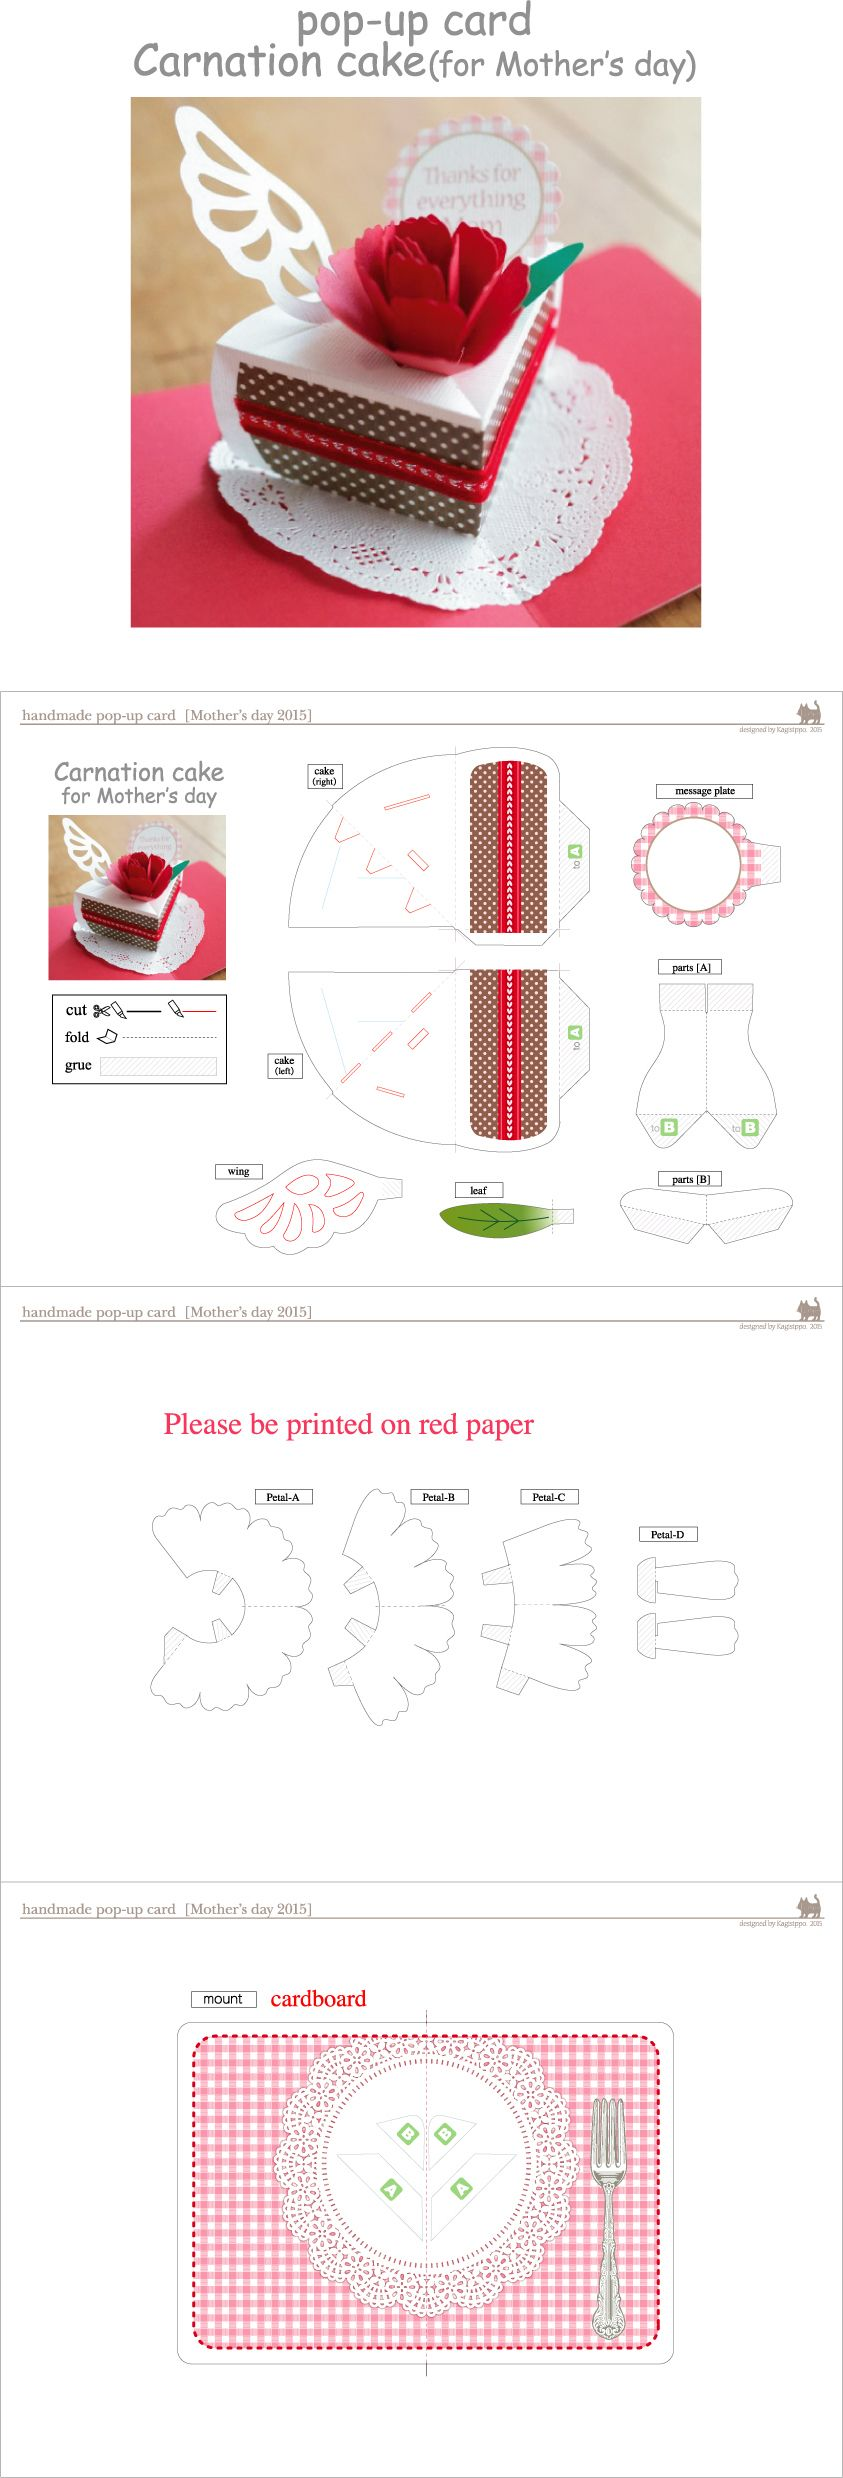 This Website Has Pop Up Cakes And Trees Birthday Card Pop Up Pop Up Card Templates Handmade Paper Crafts